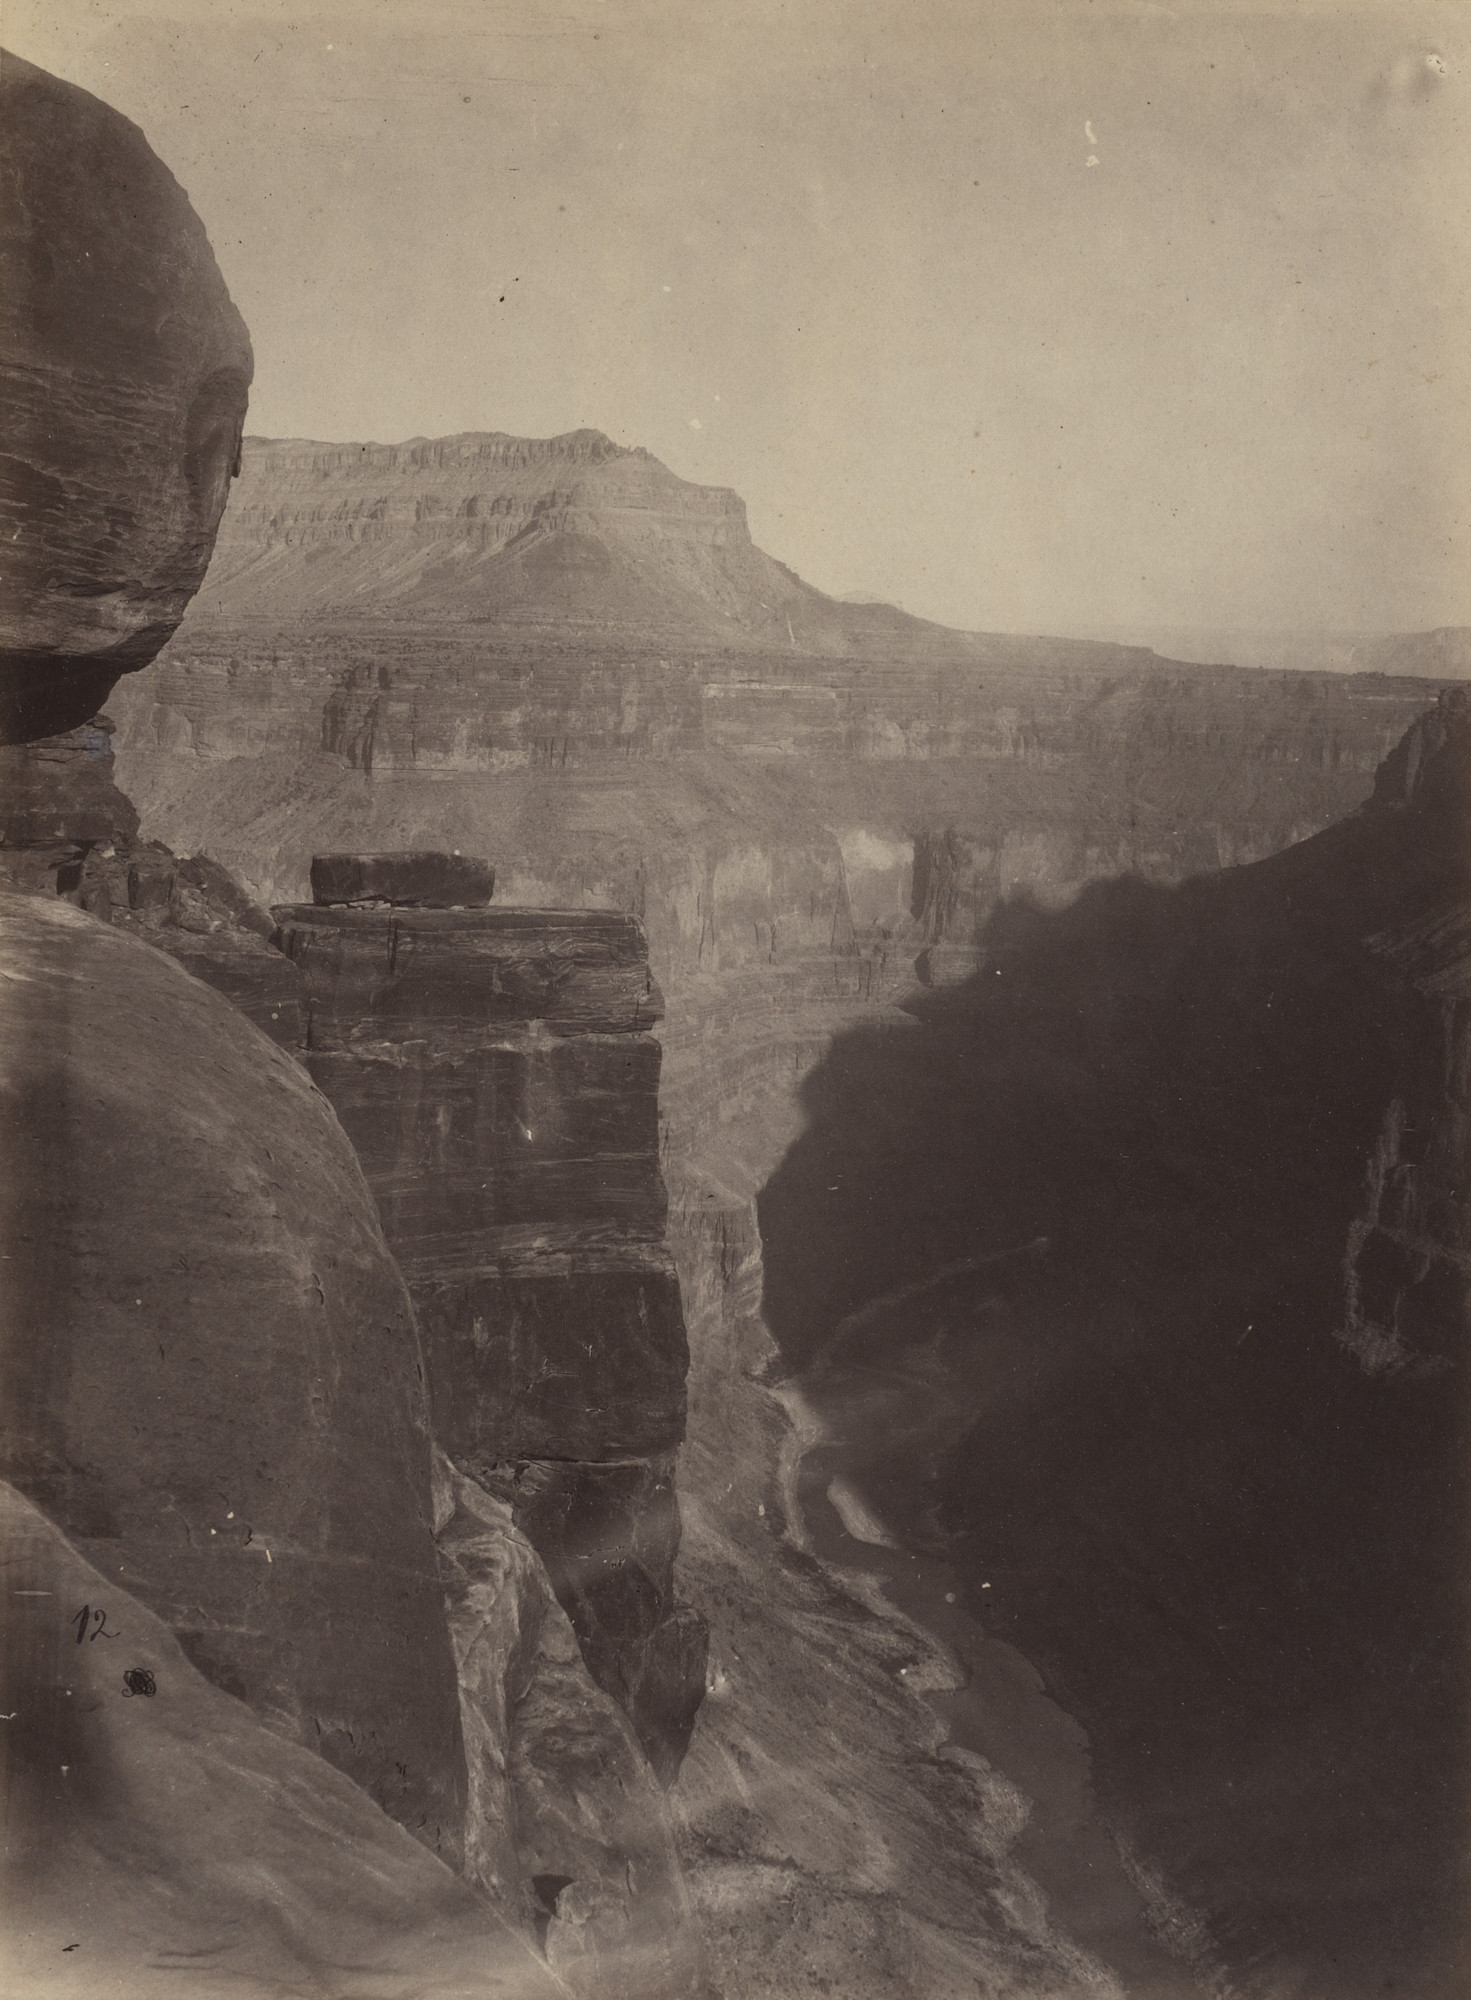 William H. Bell, Timothy O'Sullivan. Grand Canyon of the Colorado River, Mouth of Kanab Wash, Looking East. Seasons of 1871, 1872 and 1873